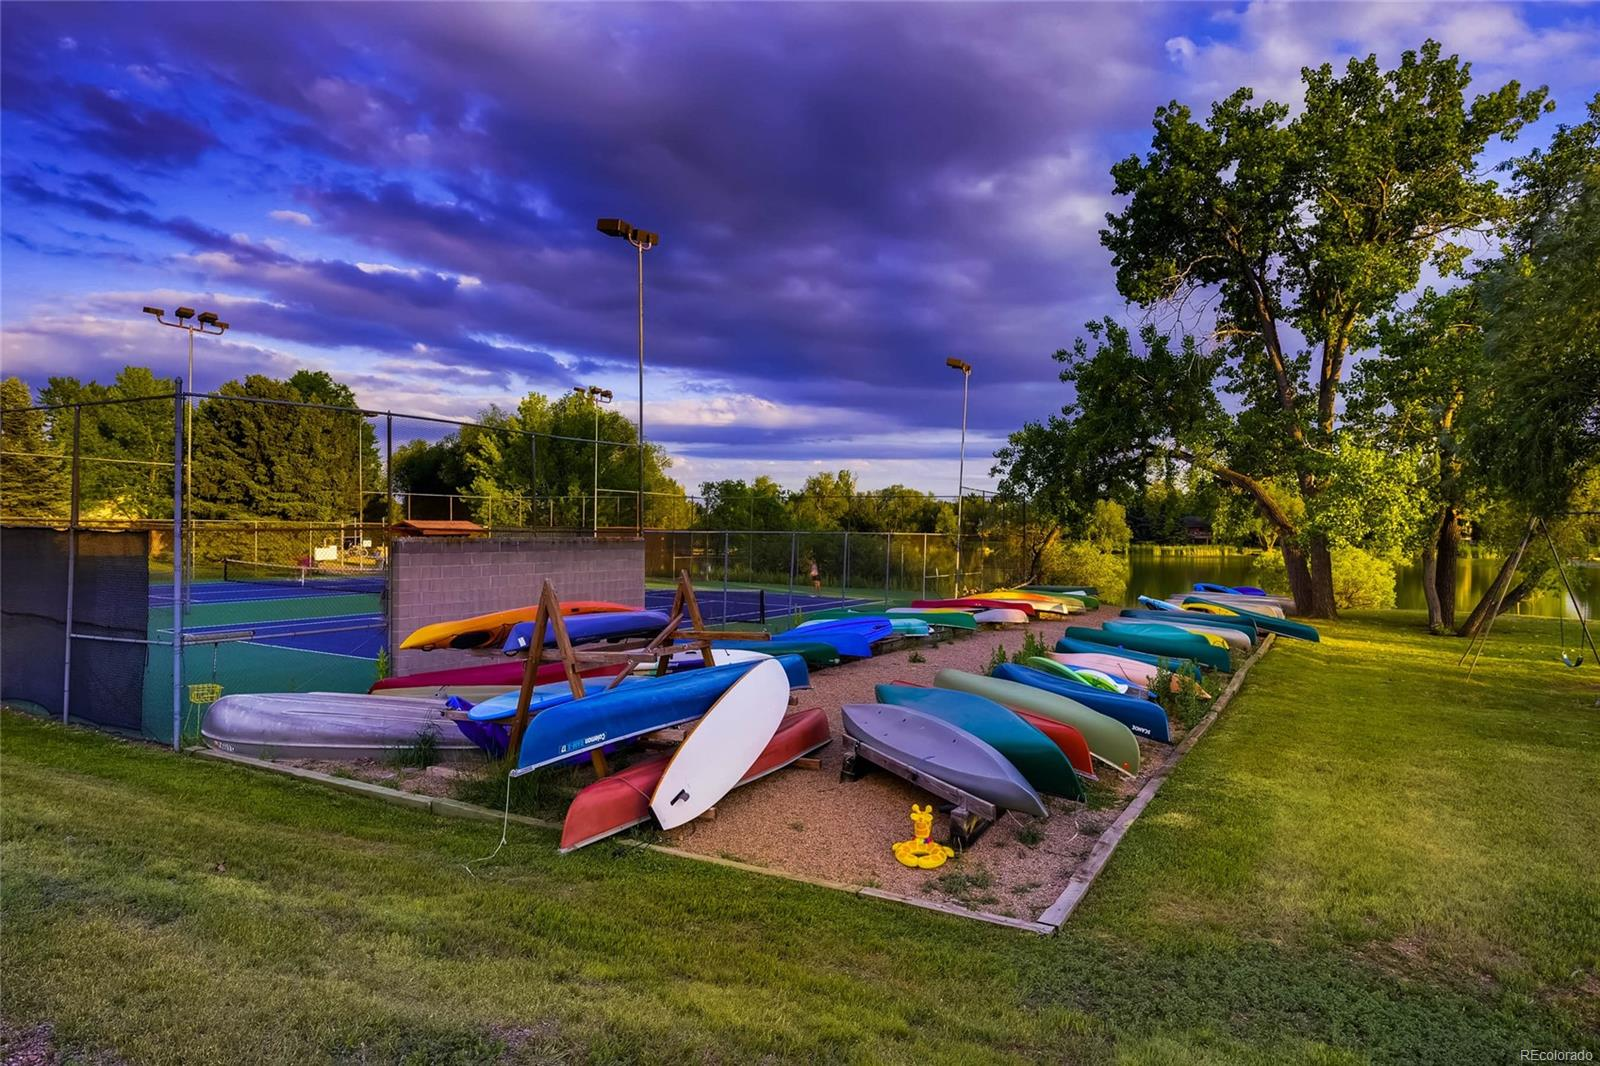 The storage area for canoes, kayaks and paddleboards.